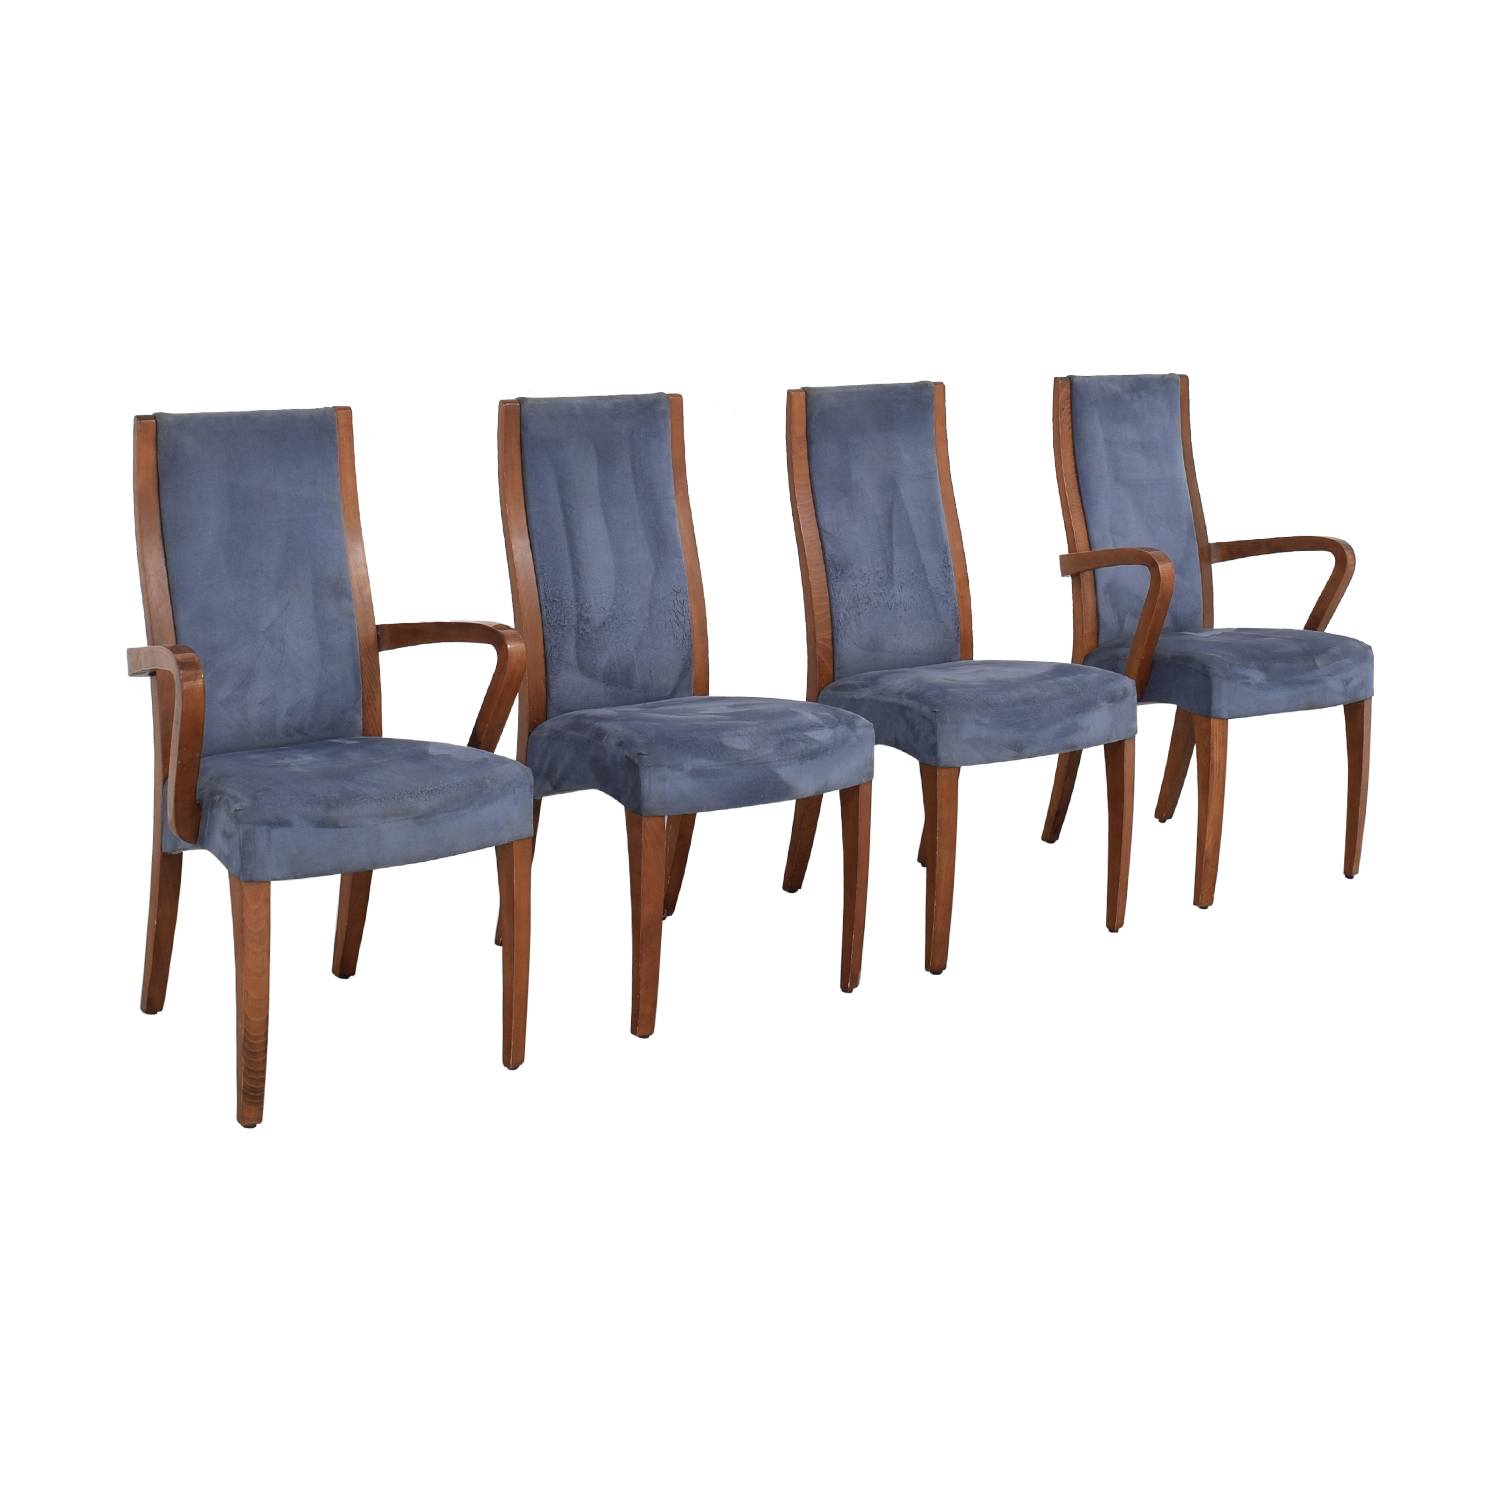 Andreu World Andreu World Dining Chairs pa